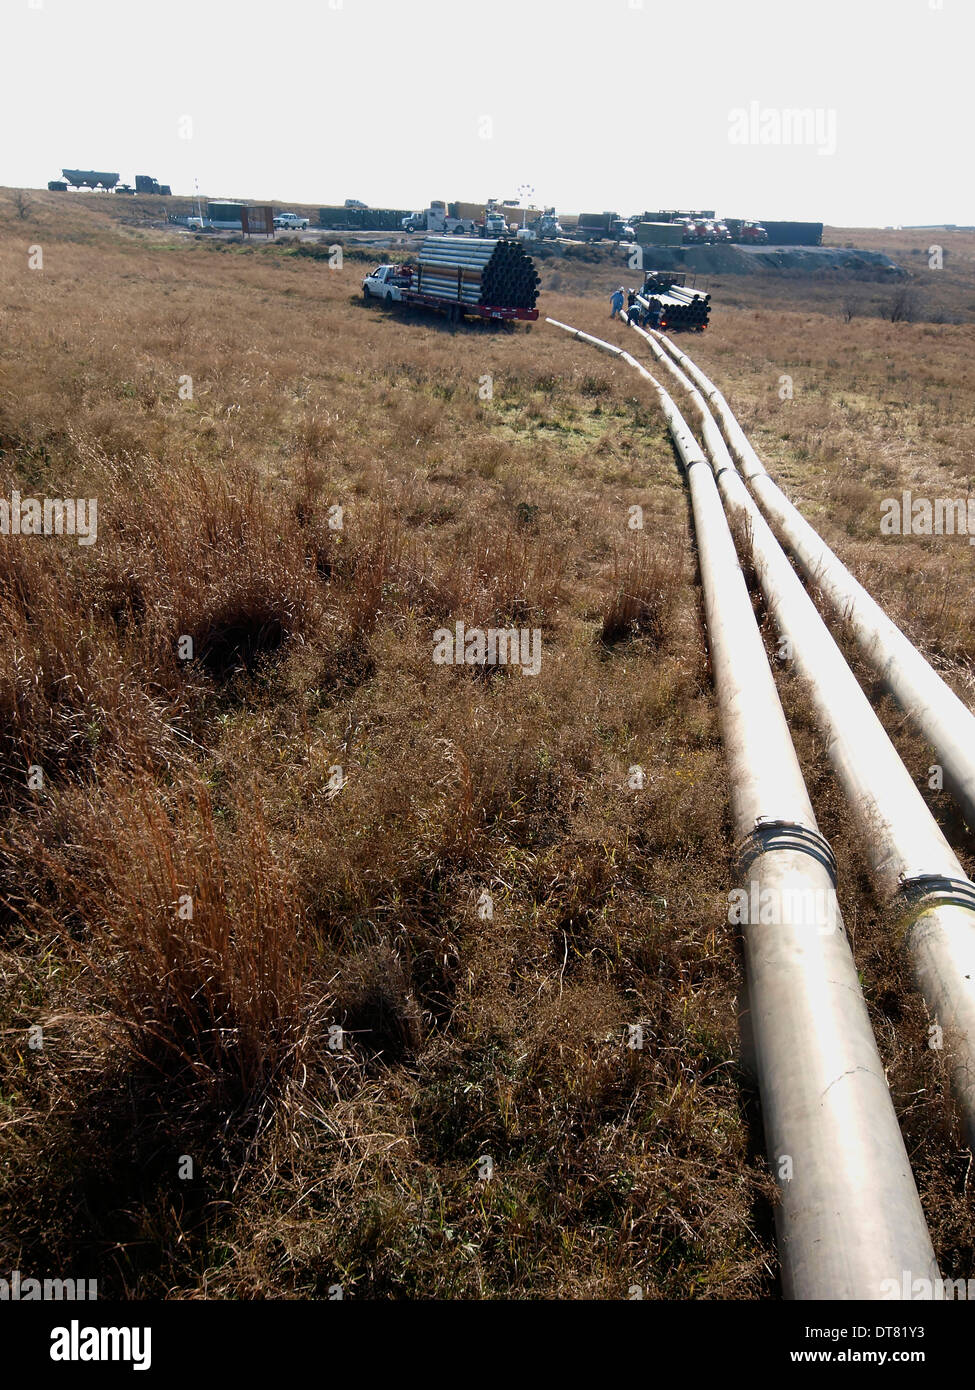 Pipeline brings fresh water to a drilling site to let thousands of gallons get pumped into a well by hydraulic fracturing - Stock Image